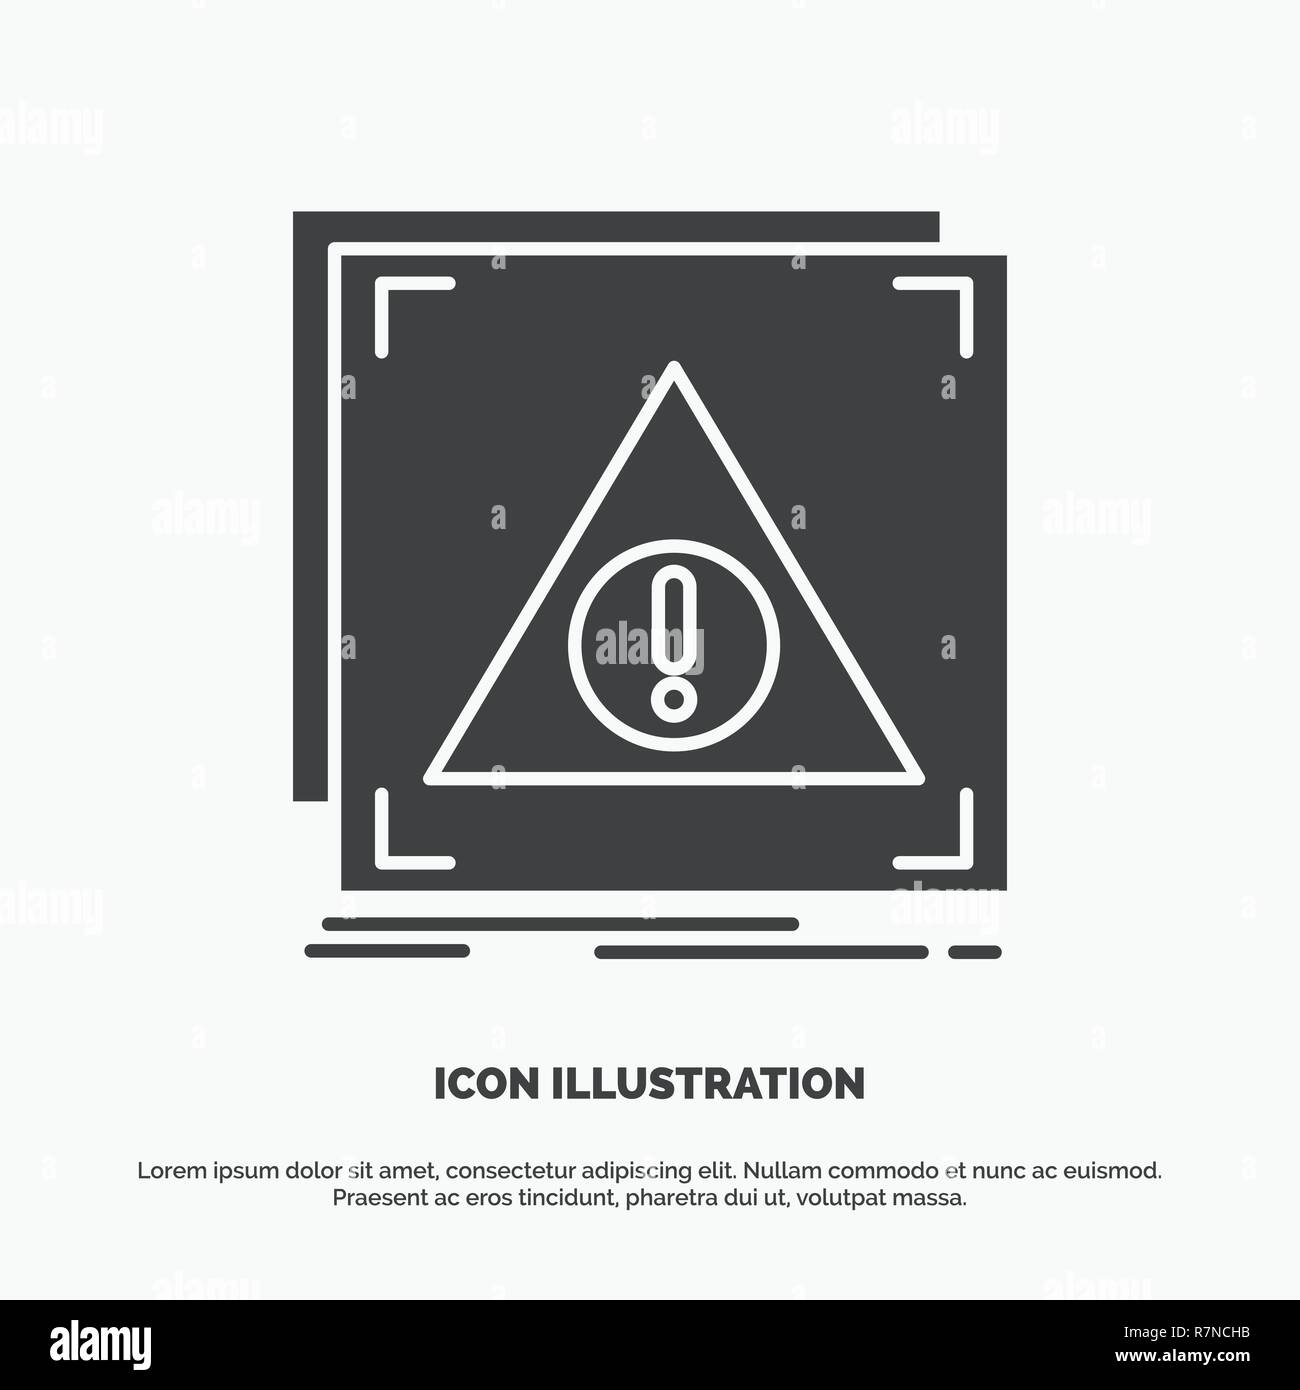 Error, Application, Denied, server, alert Icon. glyph vector gray symbol for UI and UX, website or mobile application - Stock Image